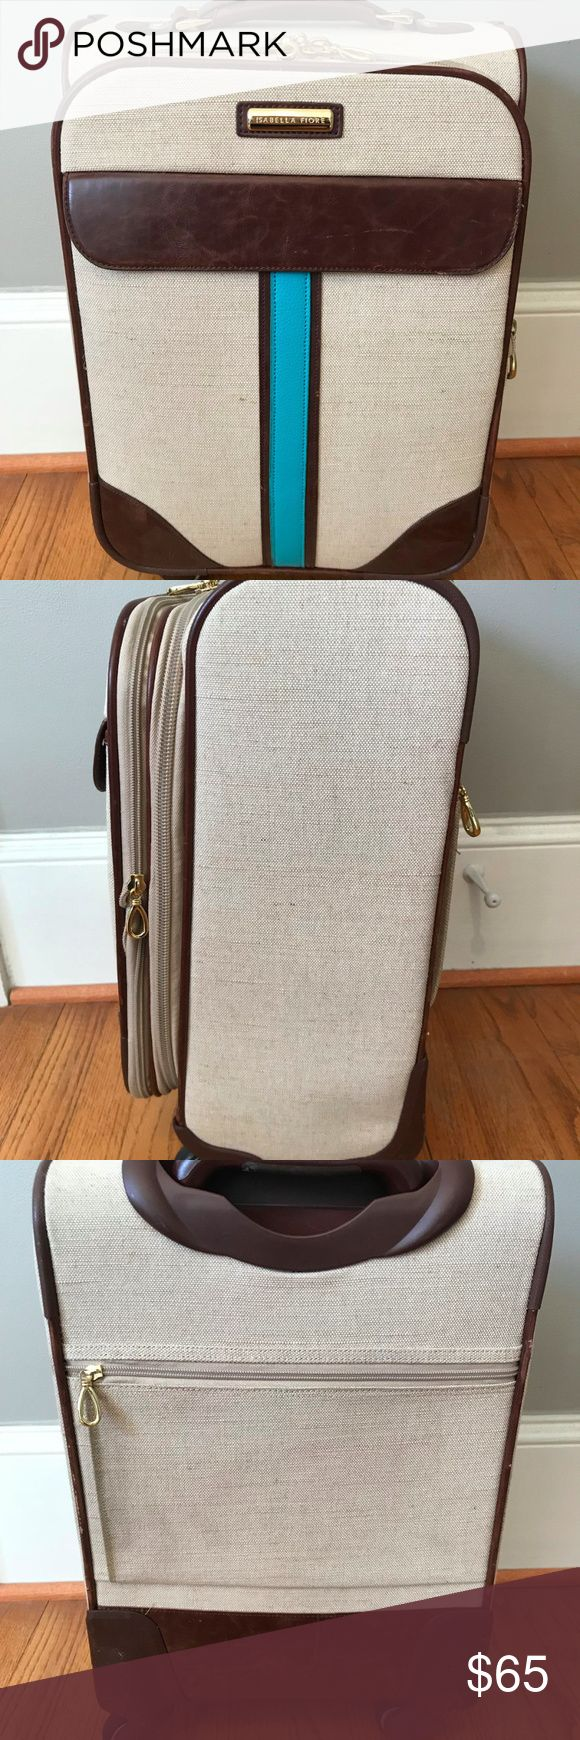 """Isabella Fiore South Hampton 17"""" Carry On Suitcase Isabella Fiore South Hampton 17"""" Carry On Weekend Spinner Suitcase  Shows some signs of wear and use (see photos), but overall in very good condition.  Fits into overhead carry on spaces and can fit underneath the seat on some large airplanes.  Has an expandable zipper to expand approximately 1-2"""".  Multiple interior and exterior pockets and a removable bag for """"extras.""""  360 degree spinner wheels.  Made of linen and faux leather.  Gold tone…"""